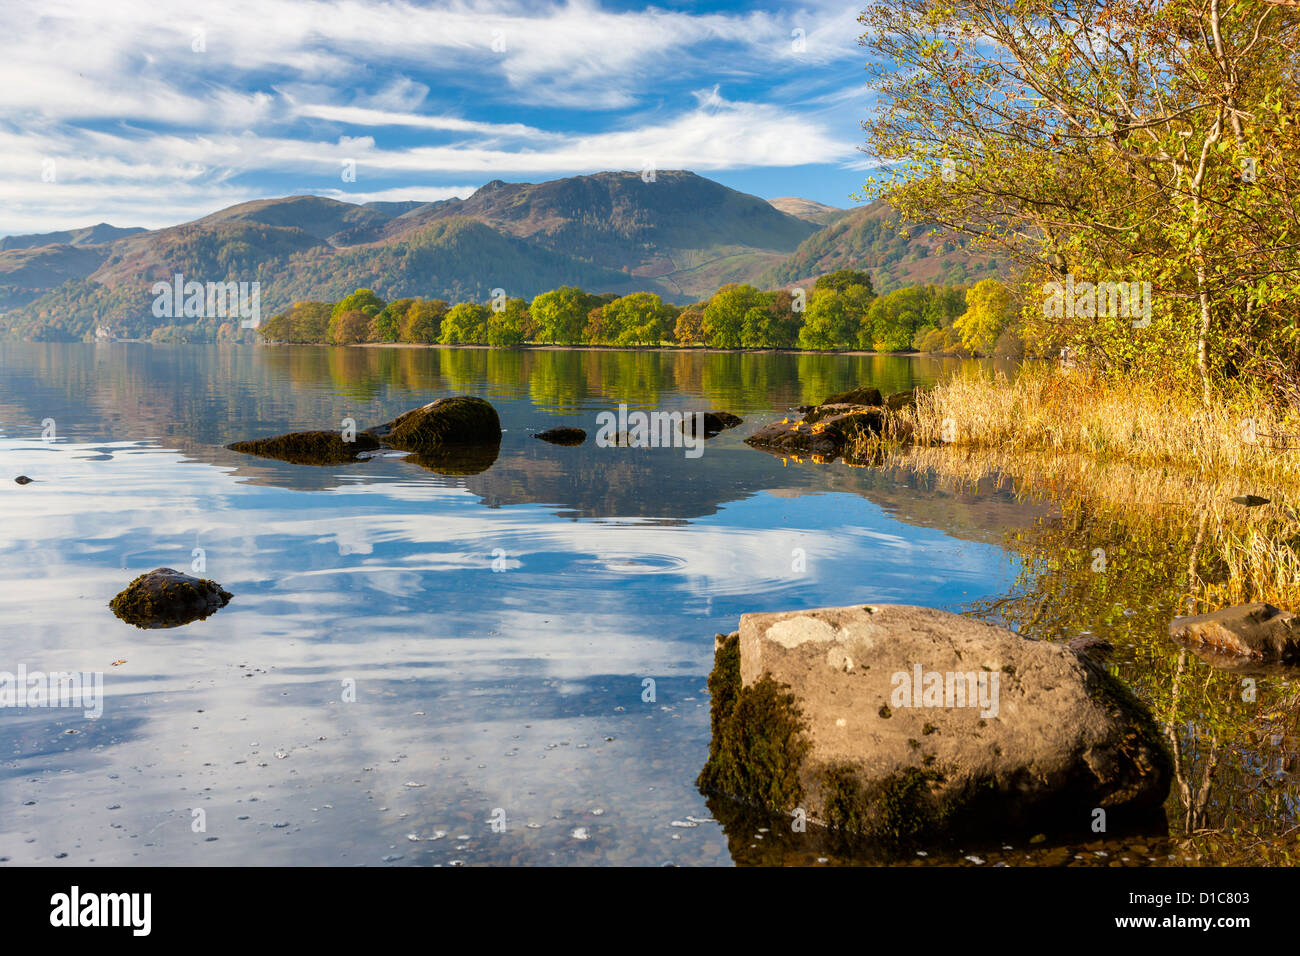 Autumn trees at Ullswater, Lake District National Park, Cumbria, England, UK, Europe. Stock Photo